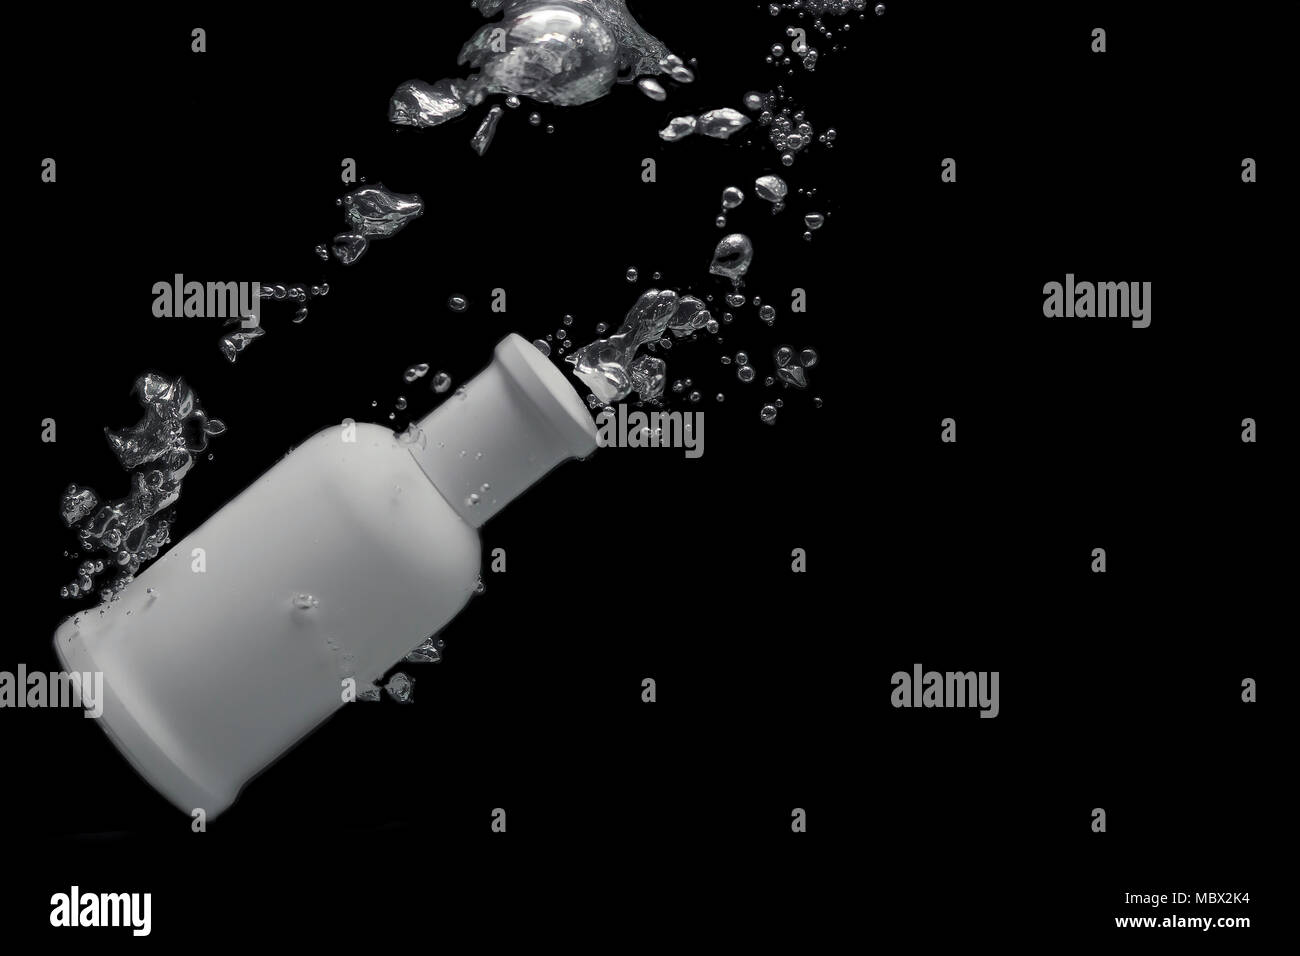 Perfume in the background of splashes, space for text - Stock Image